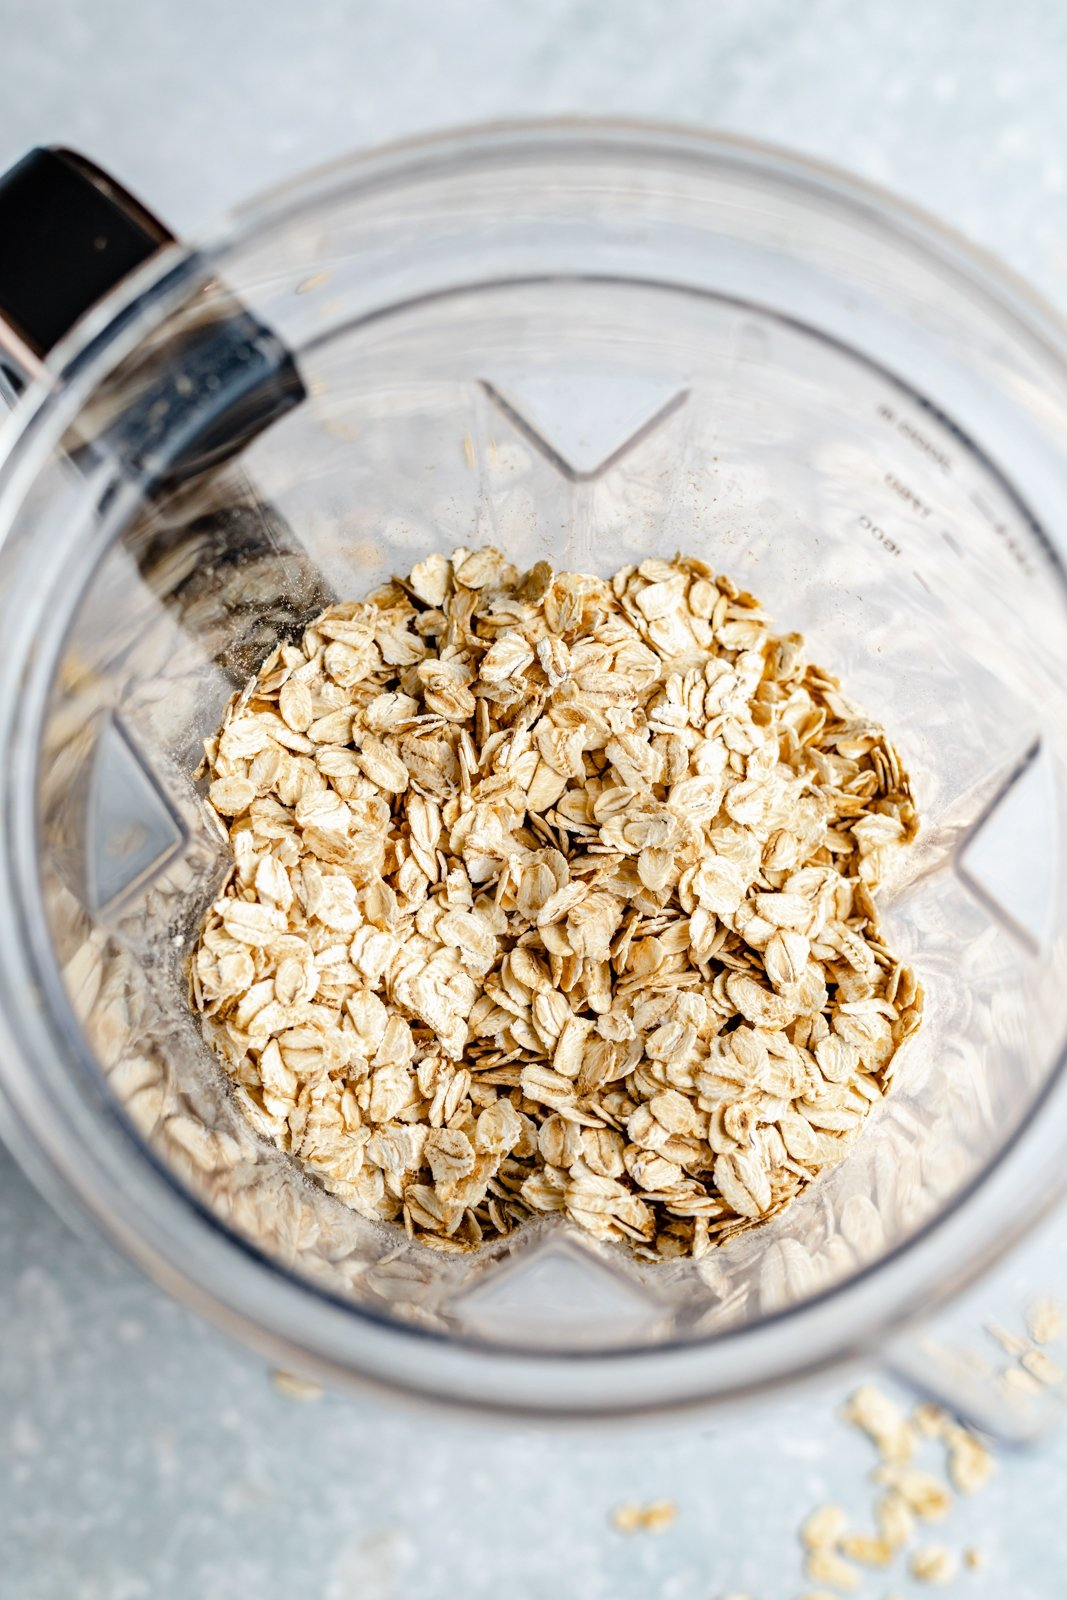 rolled oats in a blender to make homemade oat flour